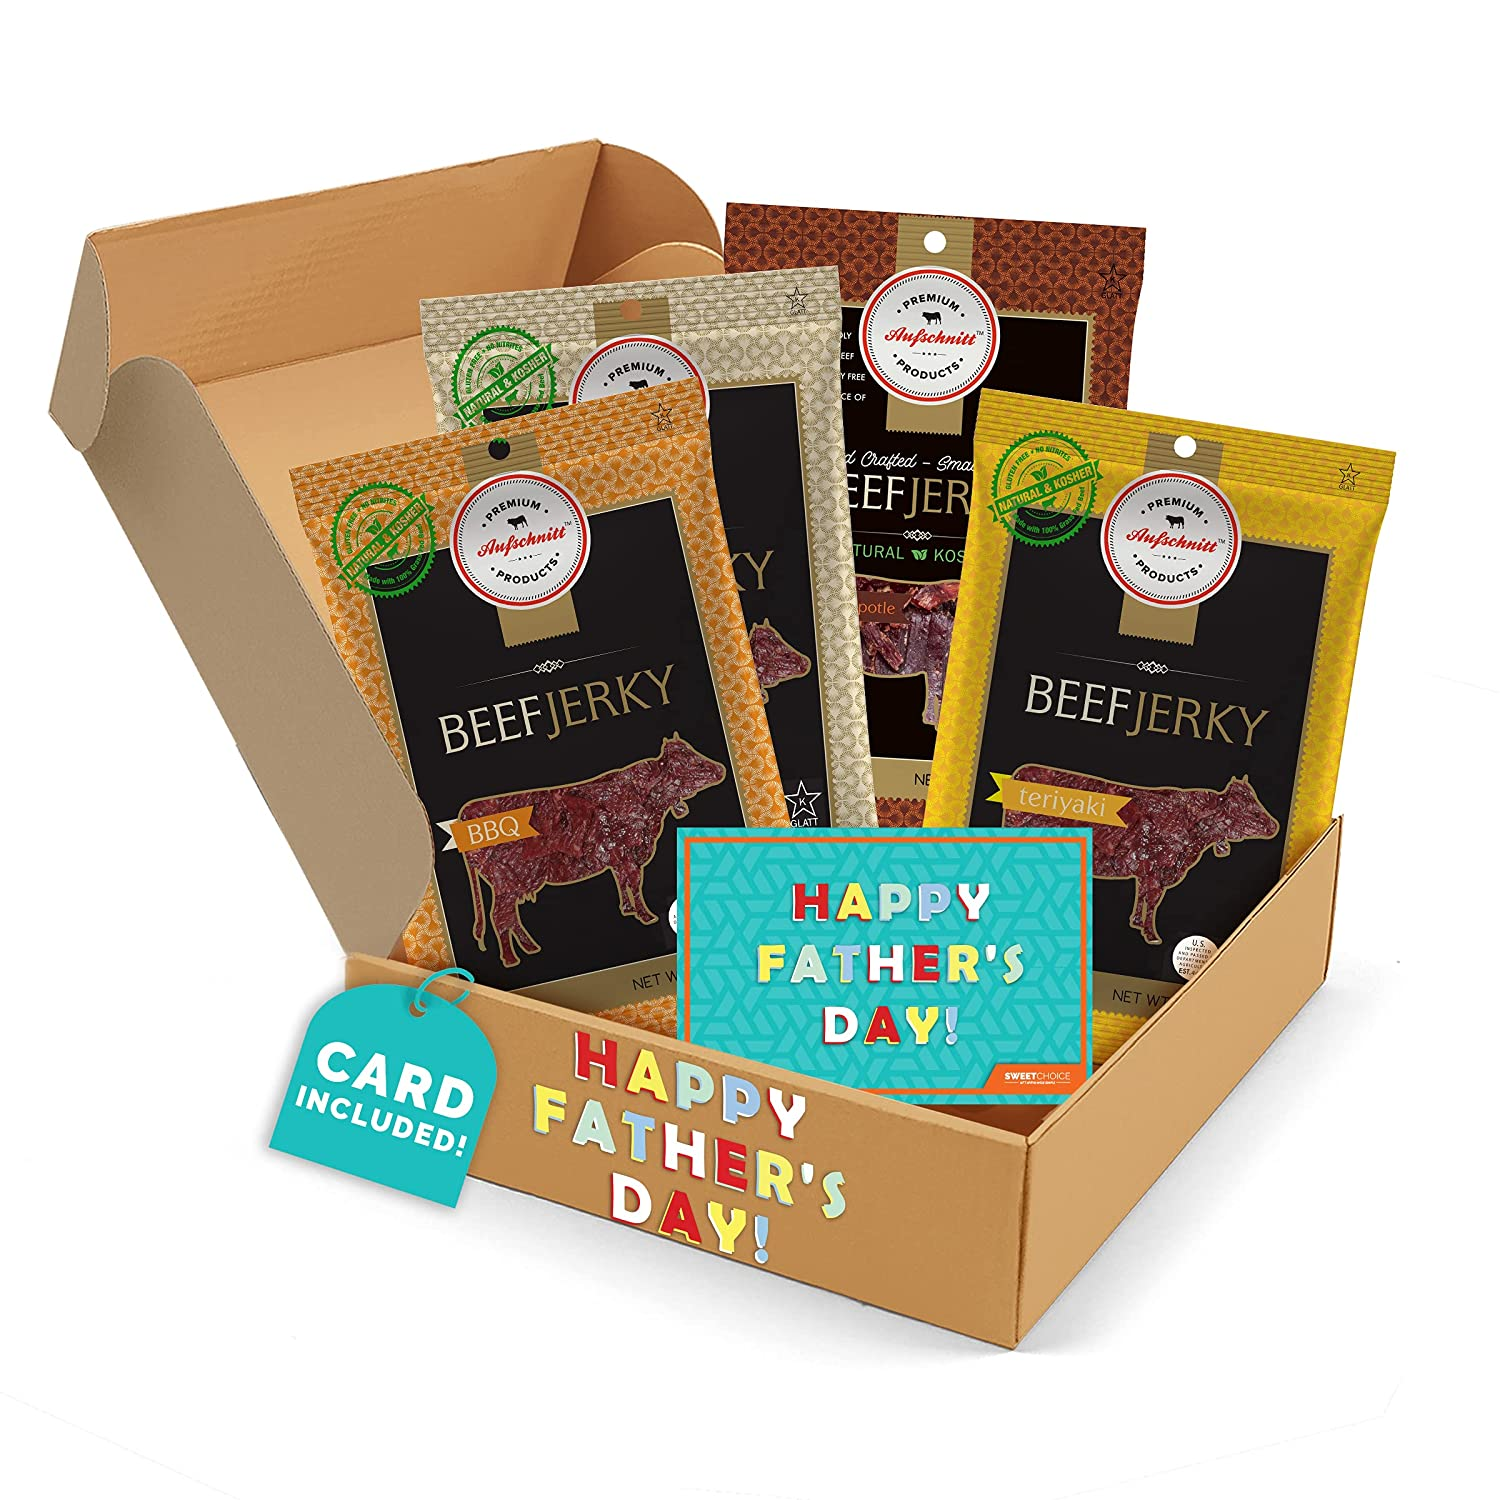 Gift baskets For Fathers day Gifts for Dad Beef Jerky - Jerky Box - Simple & Savory - Dad Gift for Men - Protein Snacks Military Care Package - Best Father's Day Gifts for Him - Meat Snack Sampler Gift Basket - 4 Bags